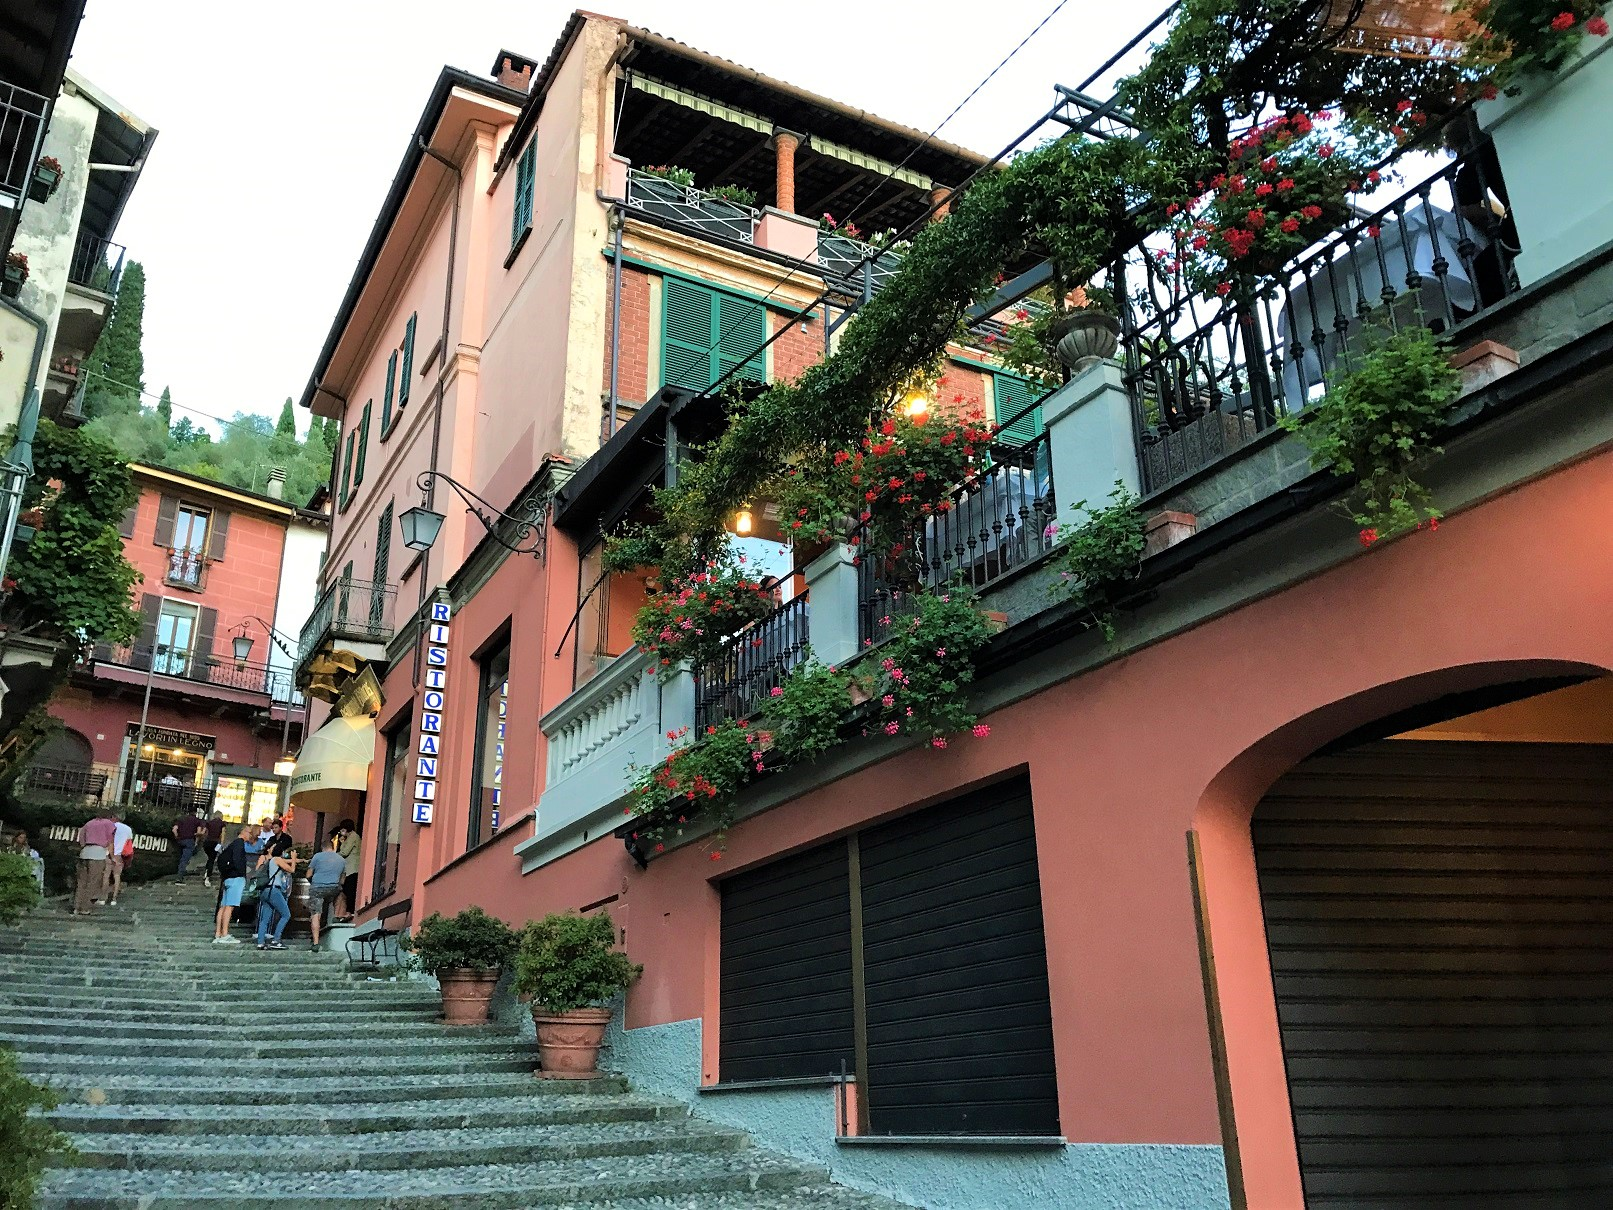 Bellagio steep stairs with pastel color houses